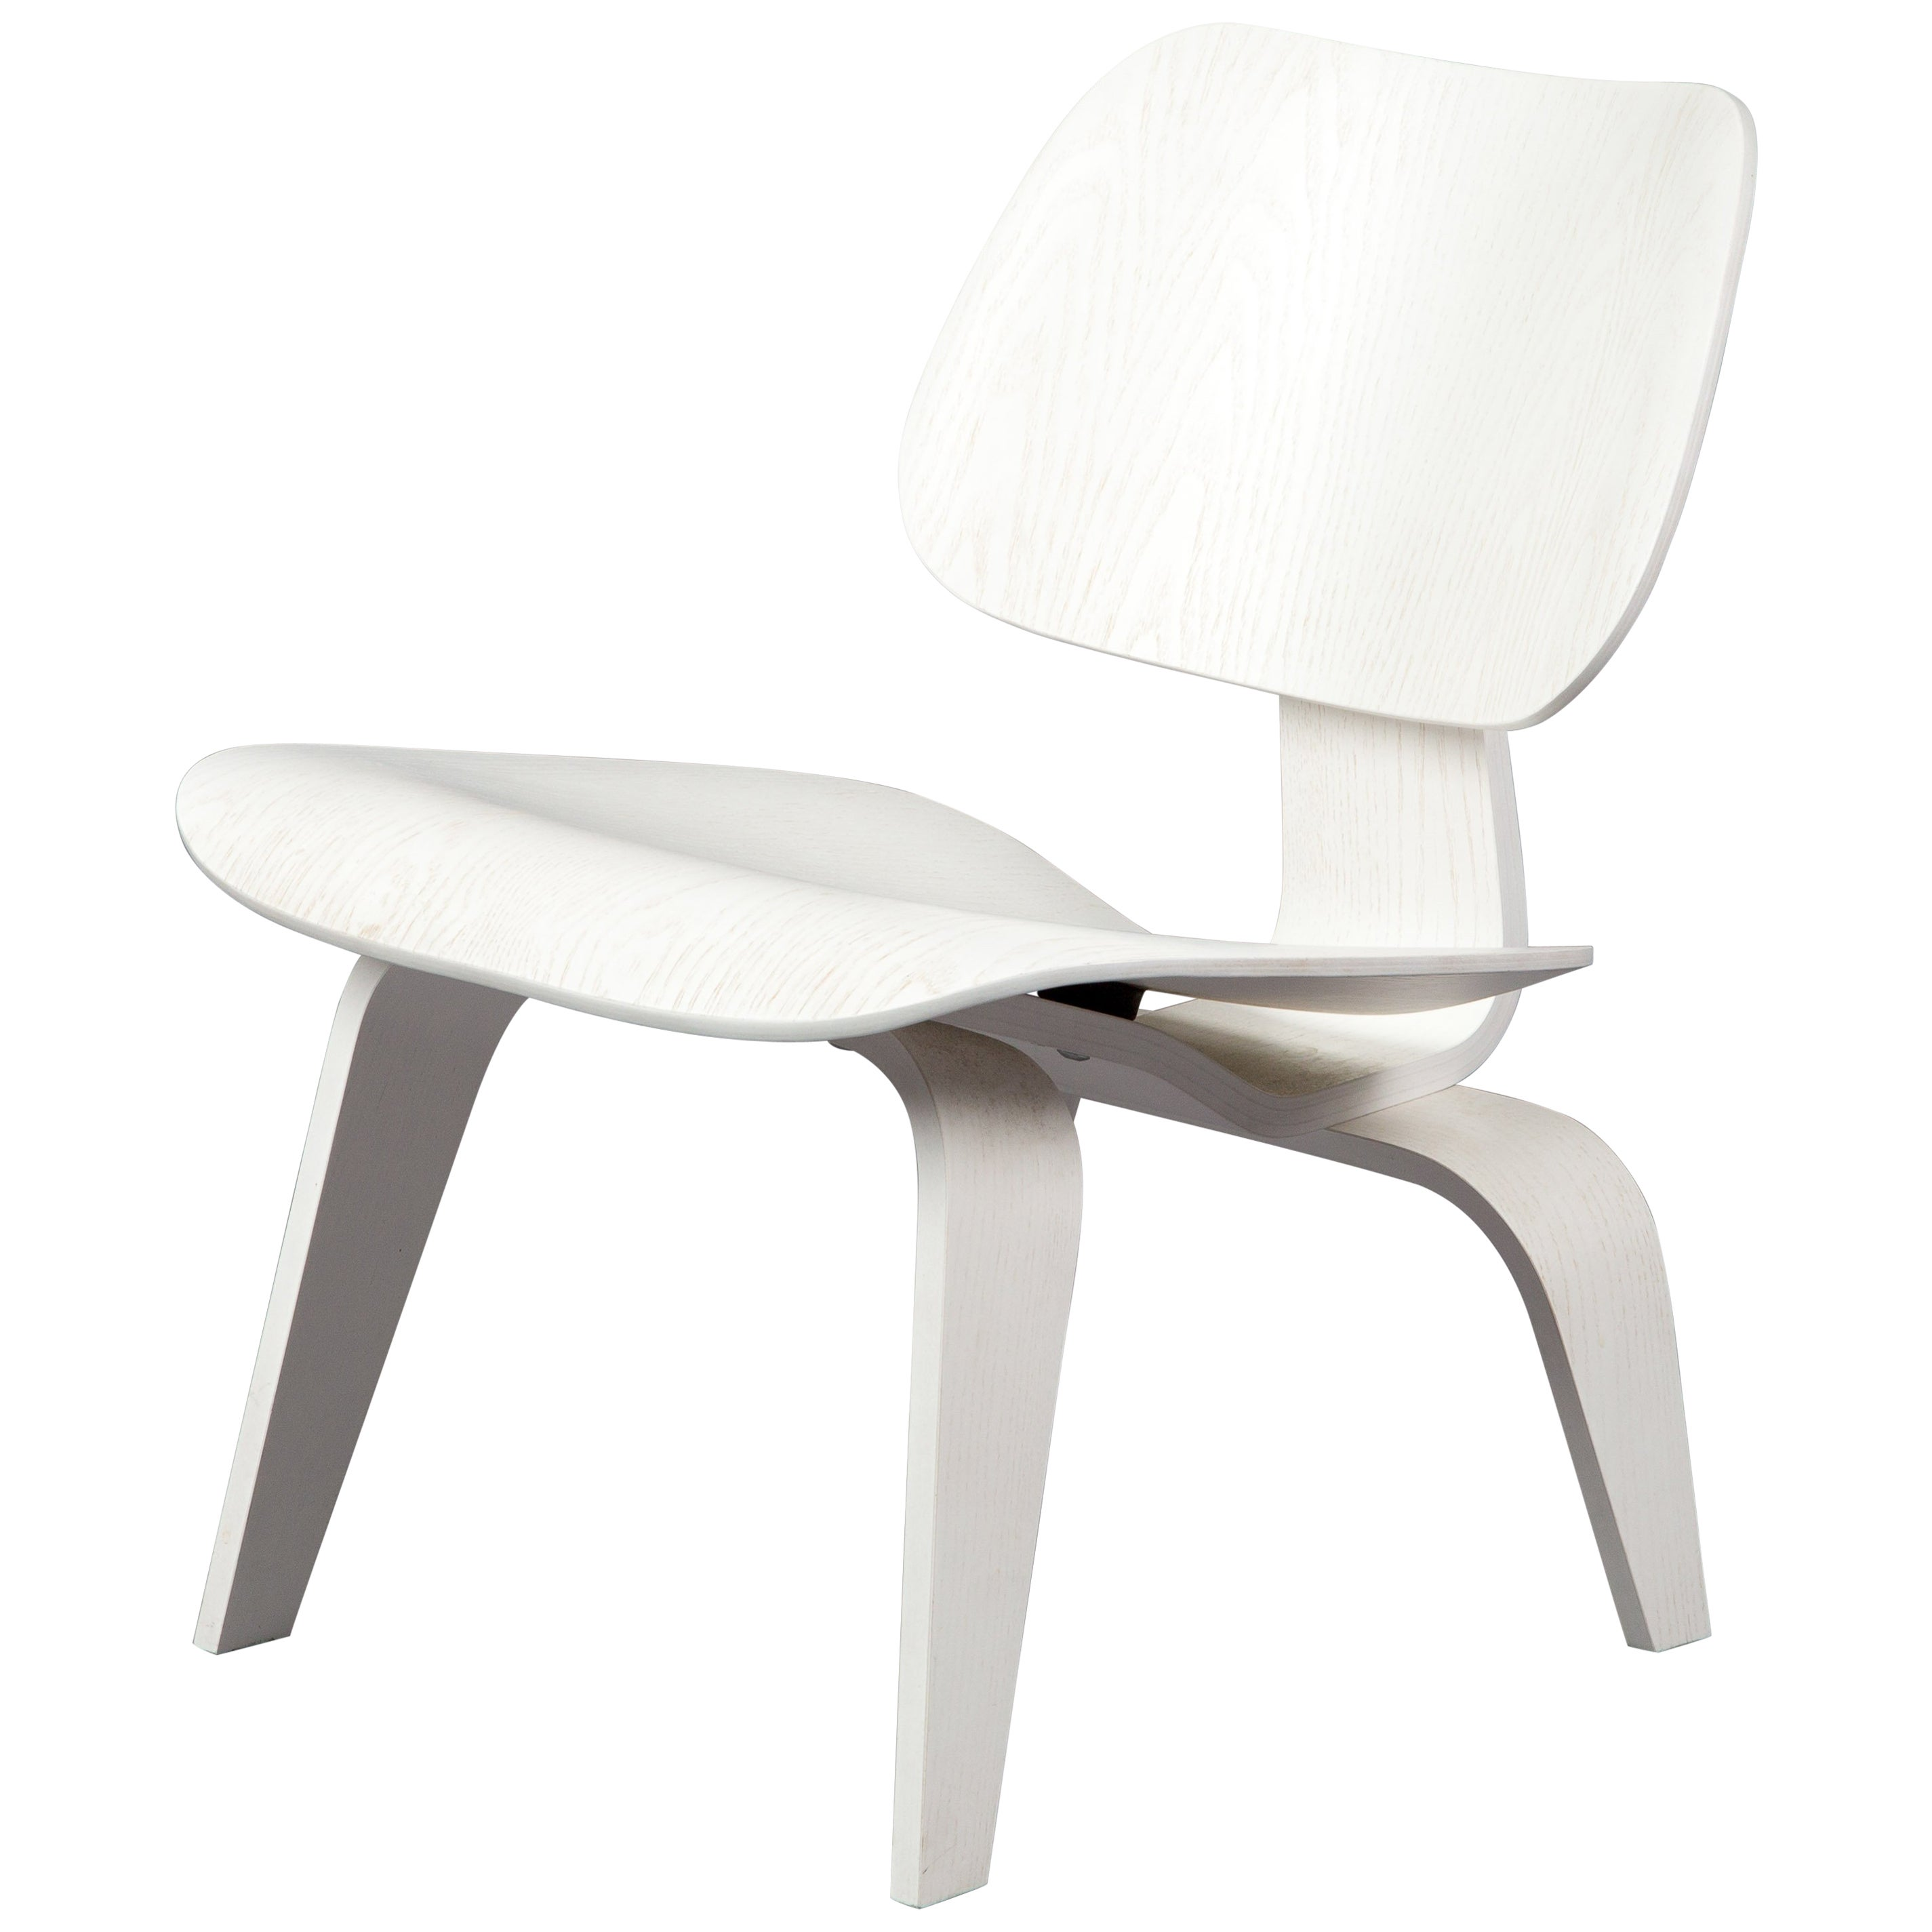 Eames Vitra Lcw Lounge Chair Wood White Limited Edition Eames Vitra